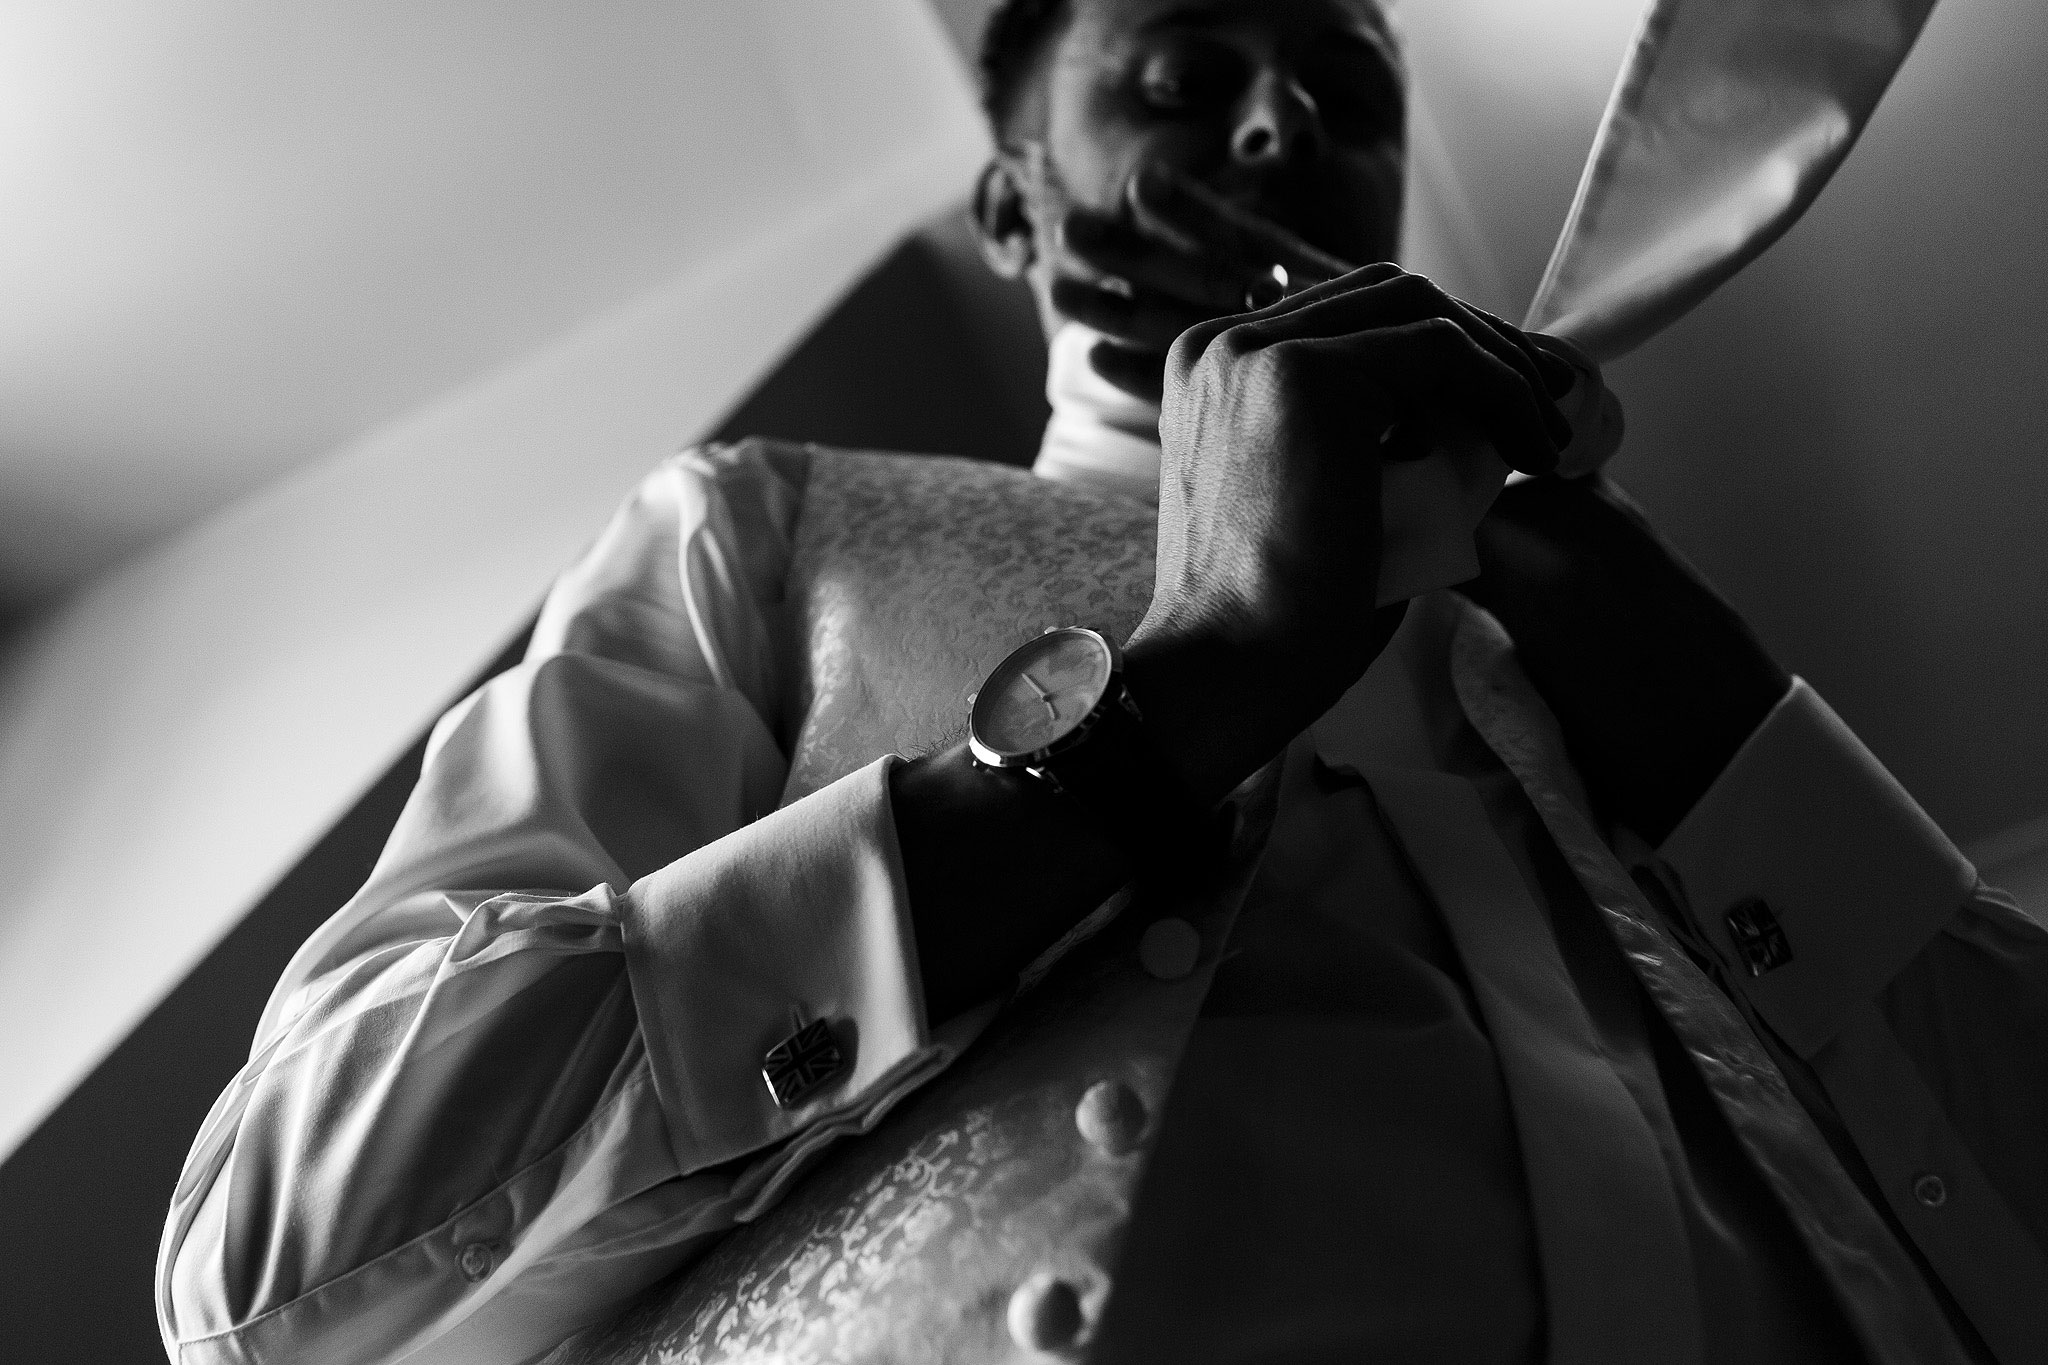 Groom fastening tie on morning of wedding day. Taken from a creative perspective - The Villa at Wrea Green Wedding Photography - Toni Darcy Photography